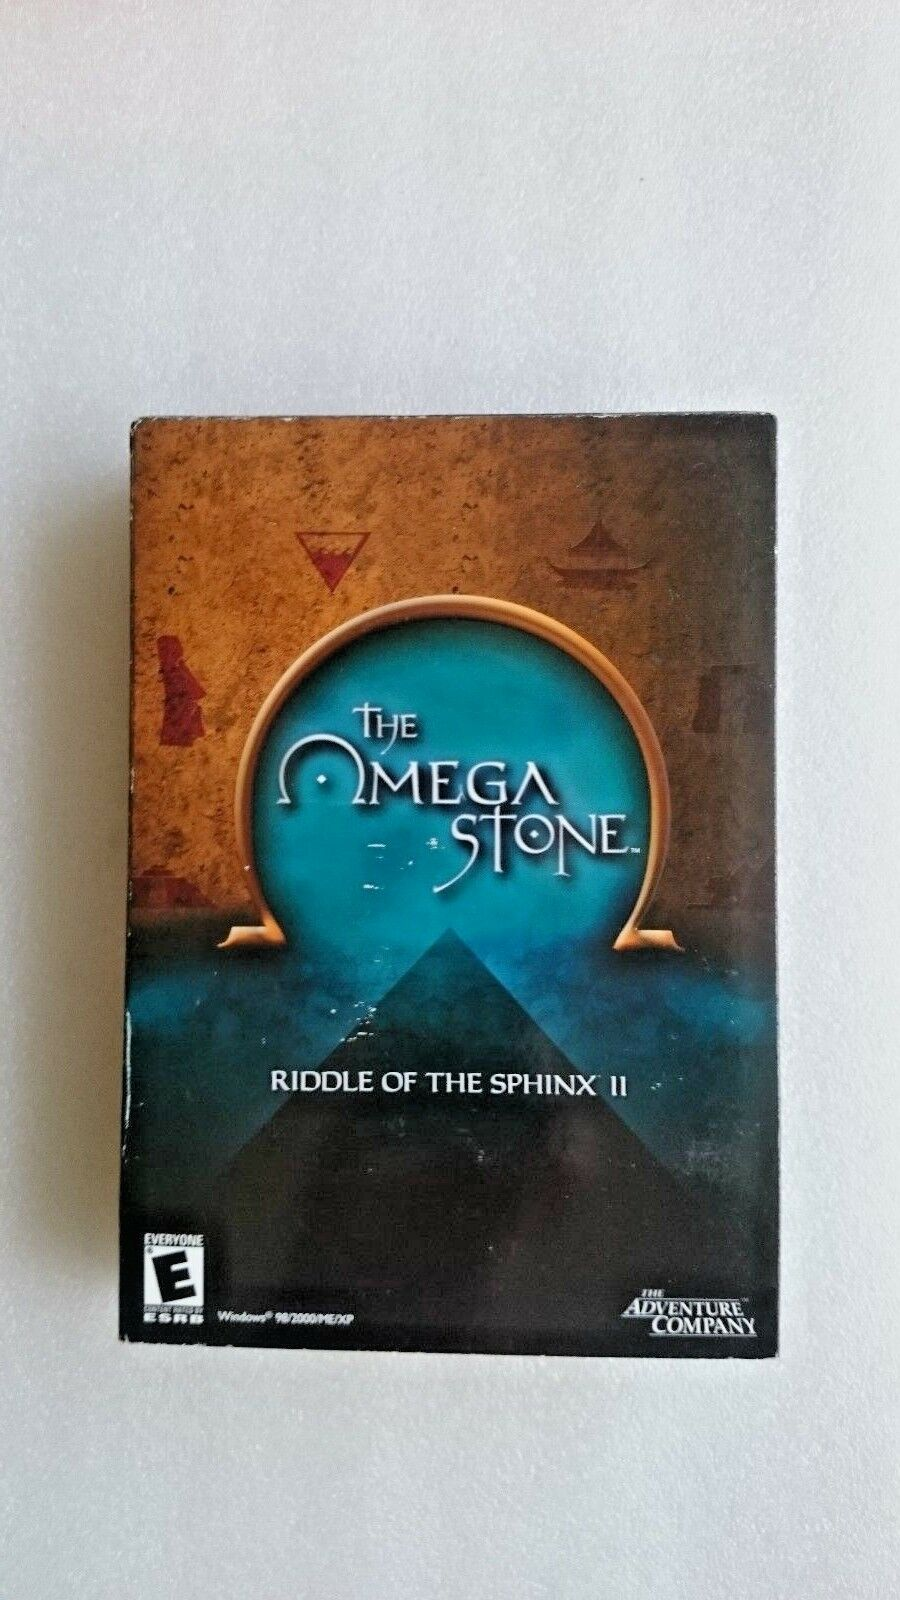 Riddle of the Sphinx 2:Omega Stone (PC, 2003) - Boxed Edition